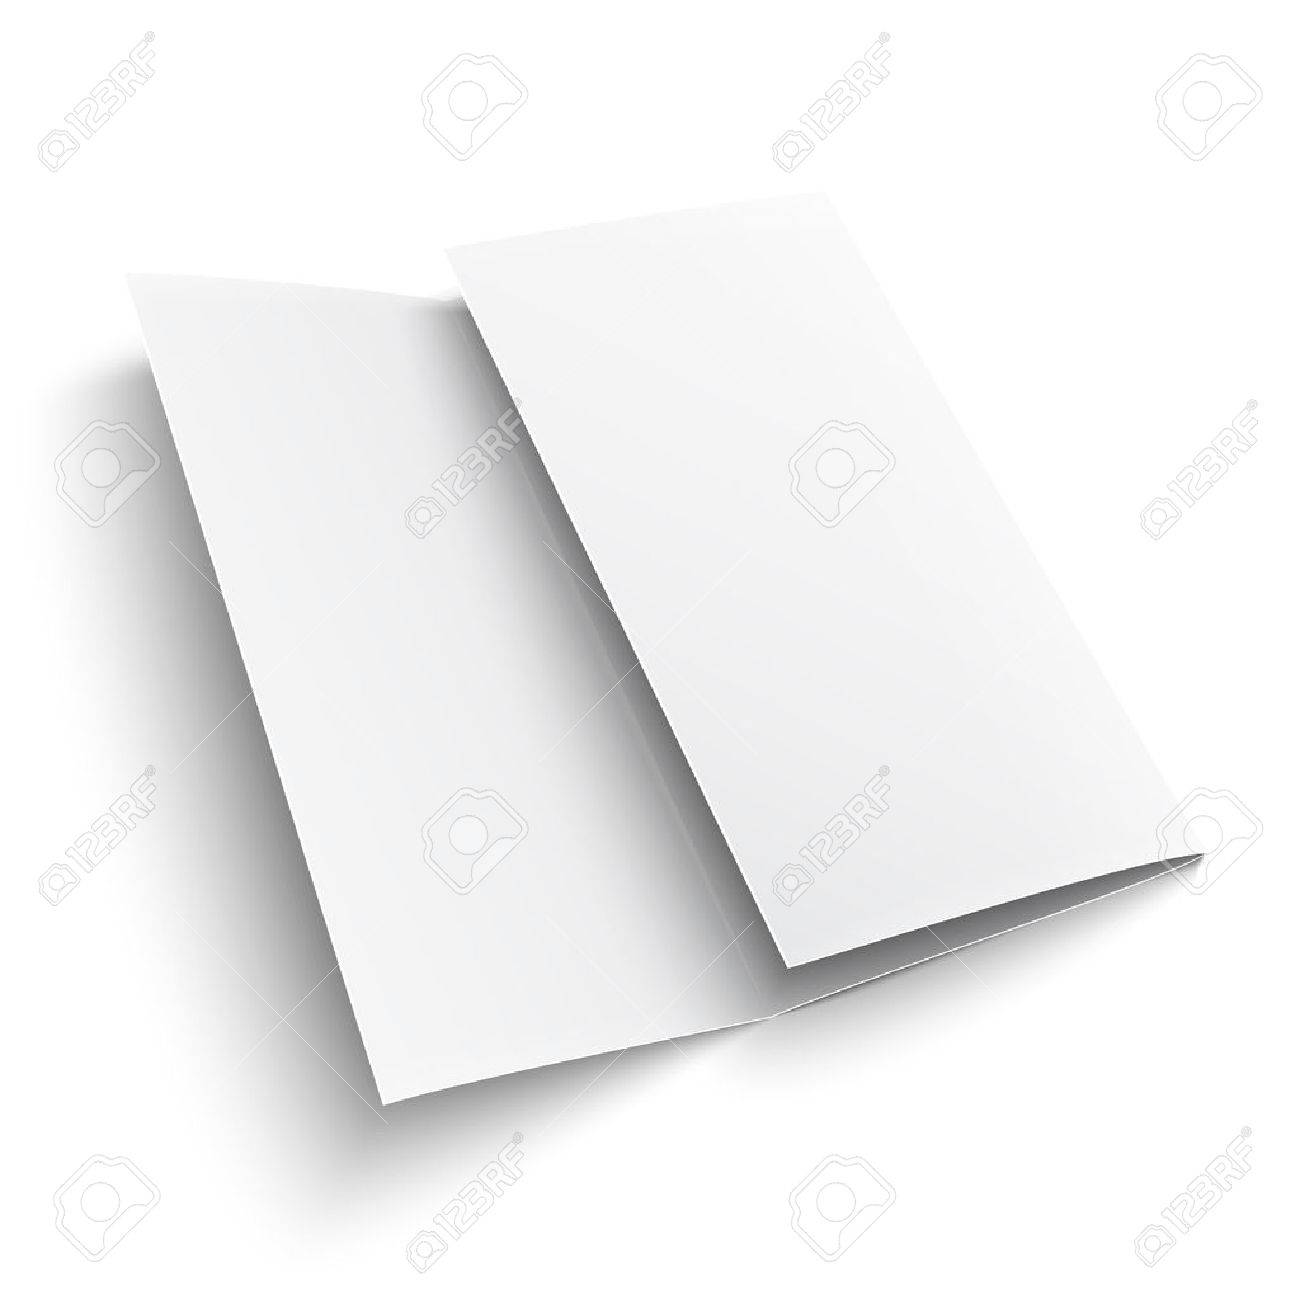 blank trifold paper brochure on white background with soft shadows